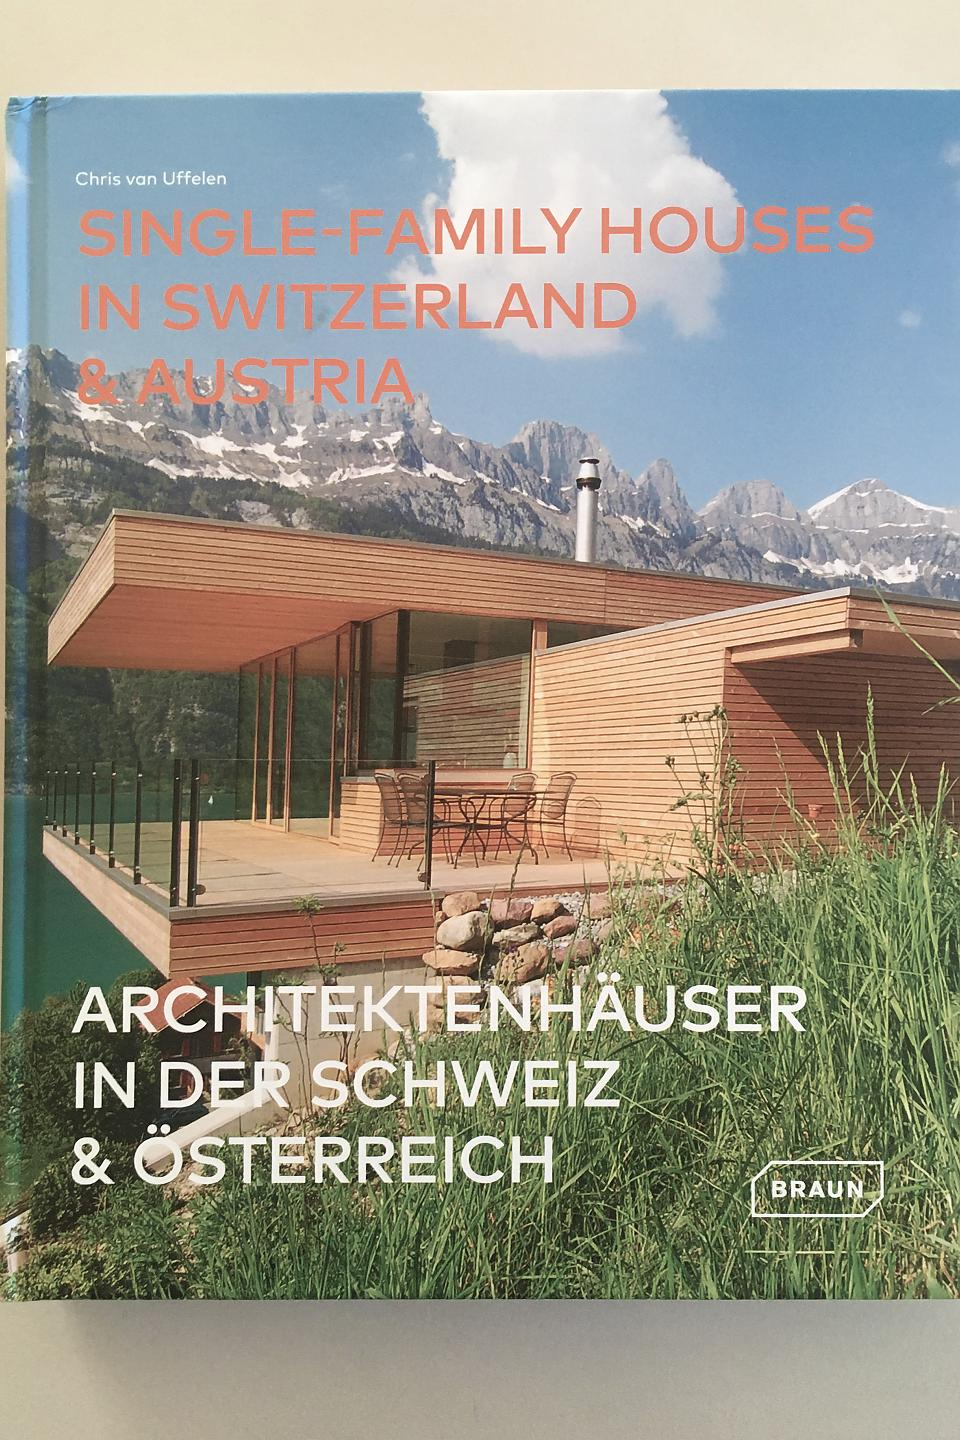 2020 Braun Publishing Single-Family Houss in Switzerland & Austria